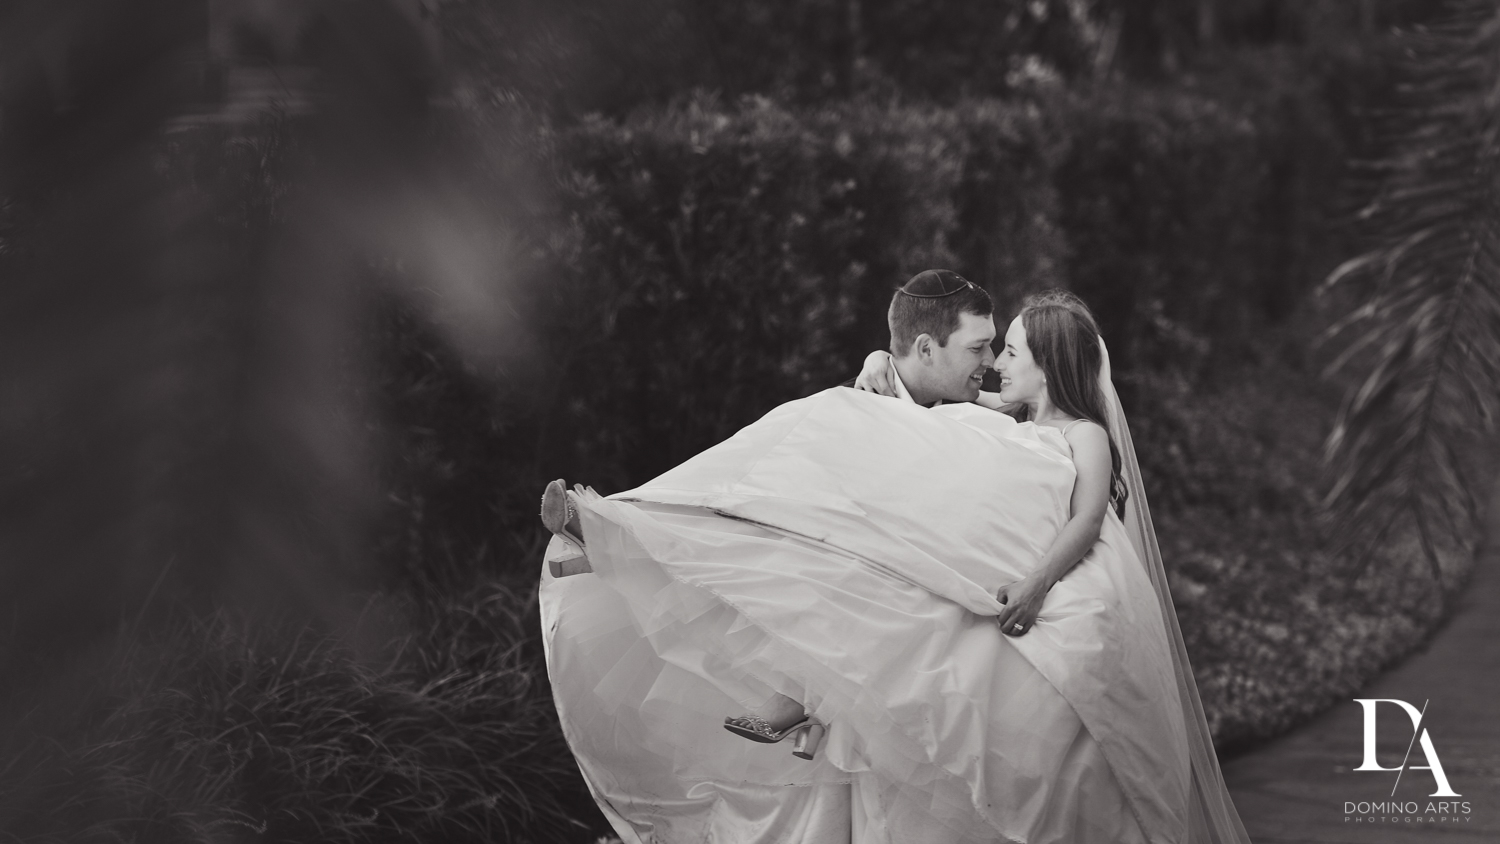 romantic B&W wedding photography by domino arts